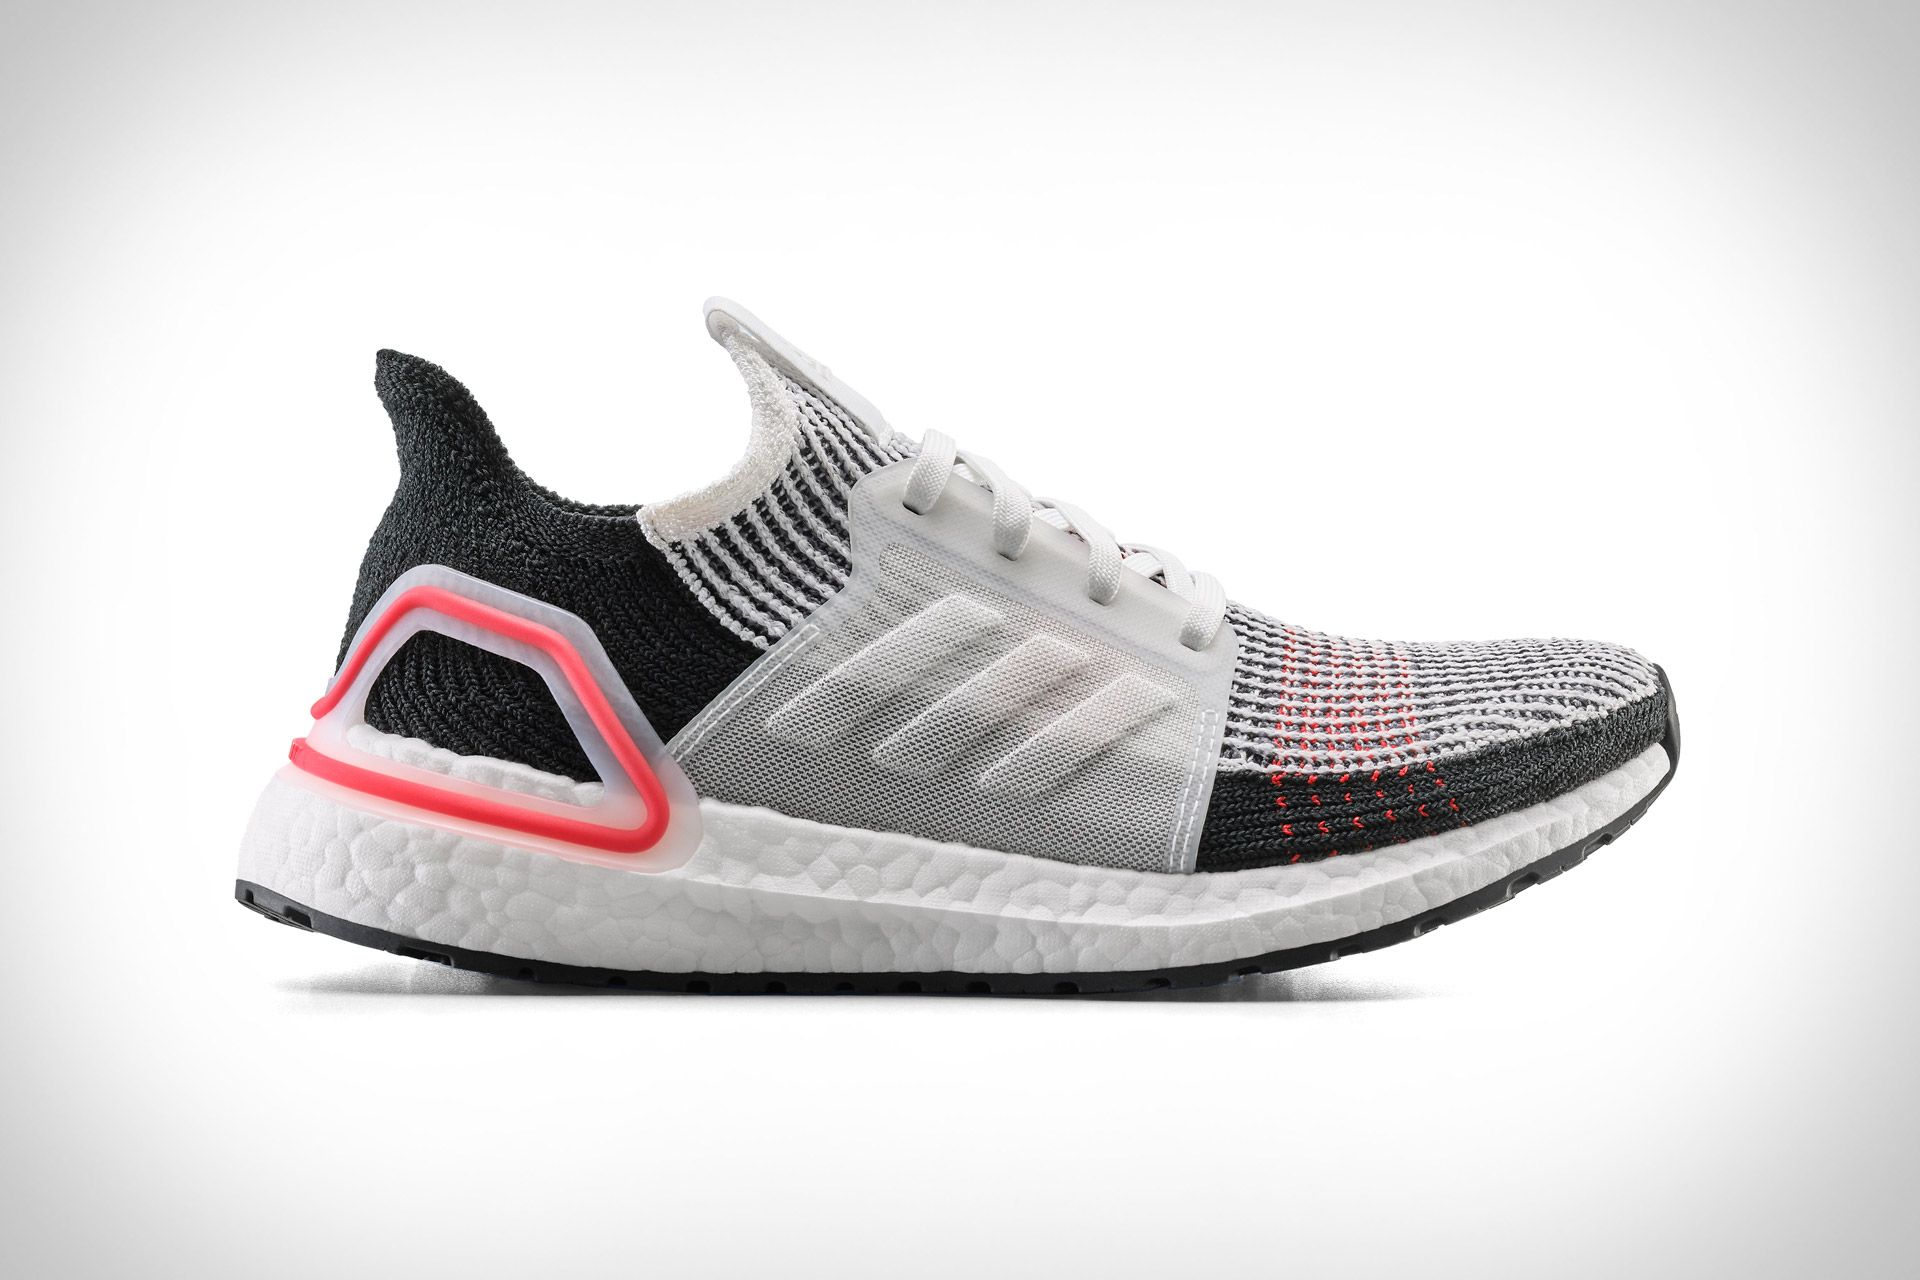 timeless design e5e31 69b03 Developed using feedback from thousands of athletes, the Adidas Ultraboost  19 is a complete redesign